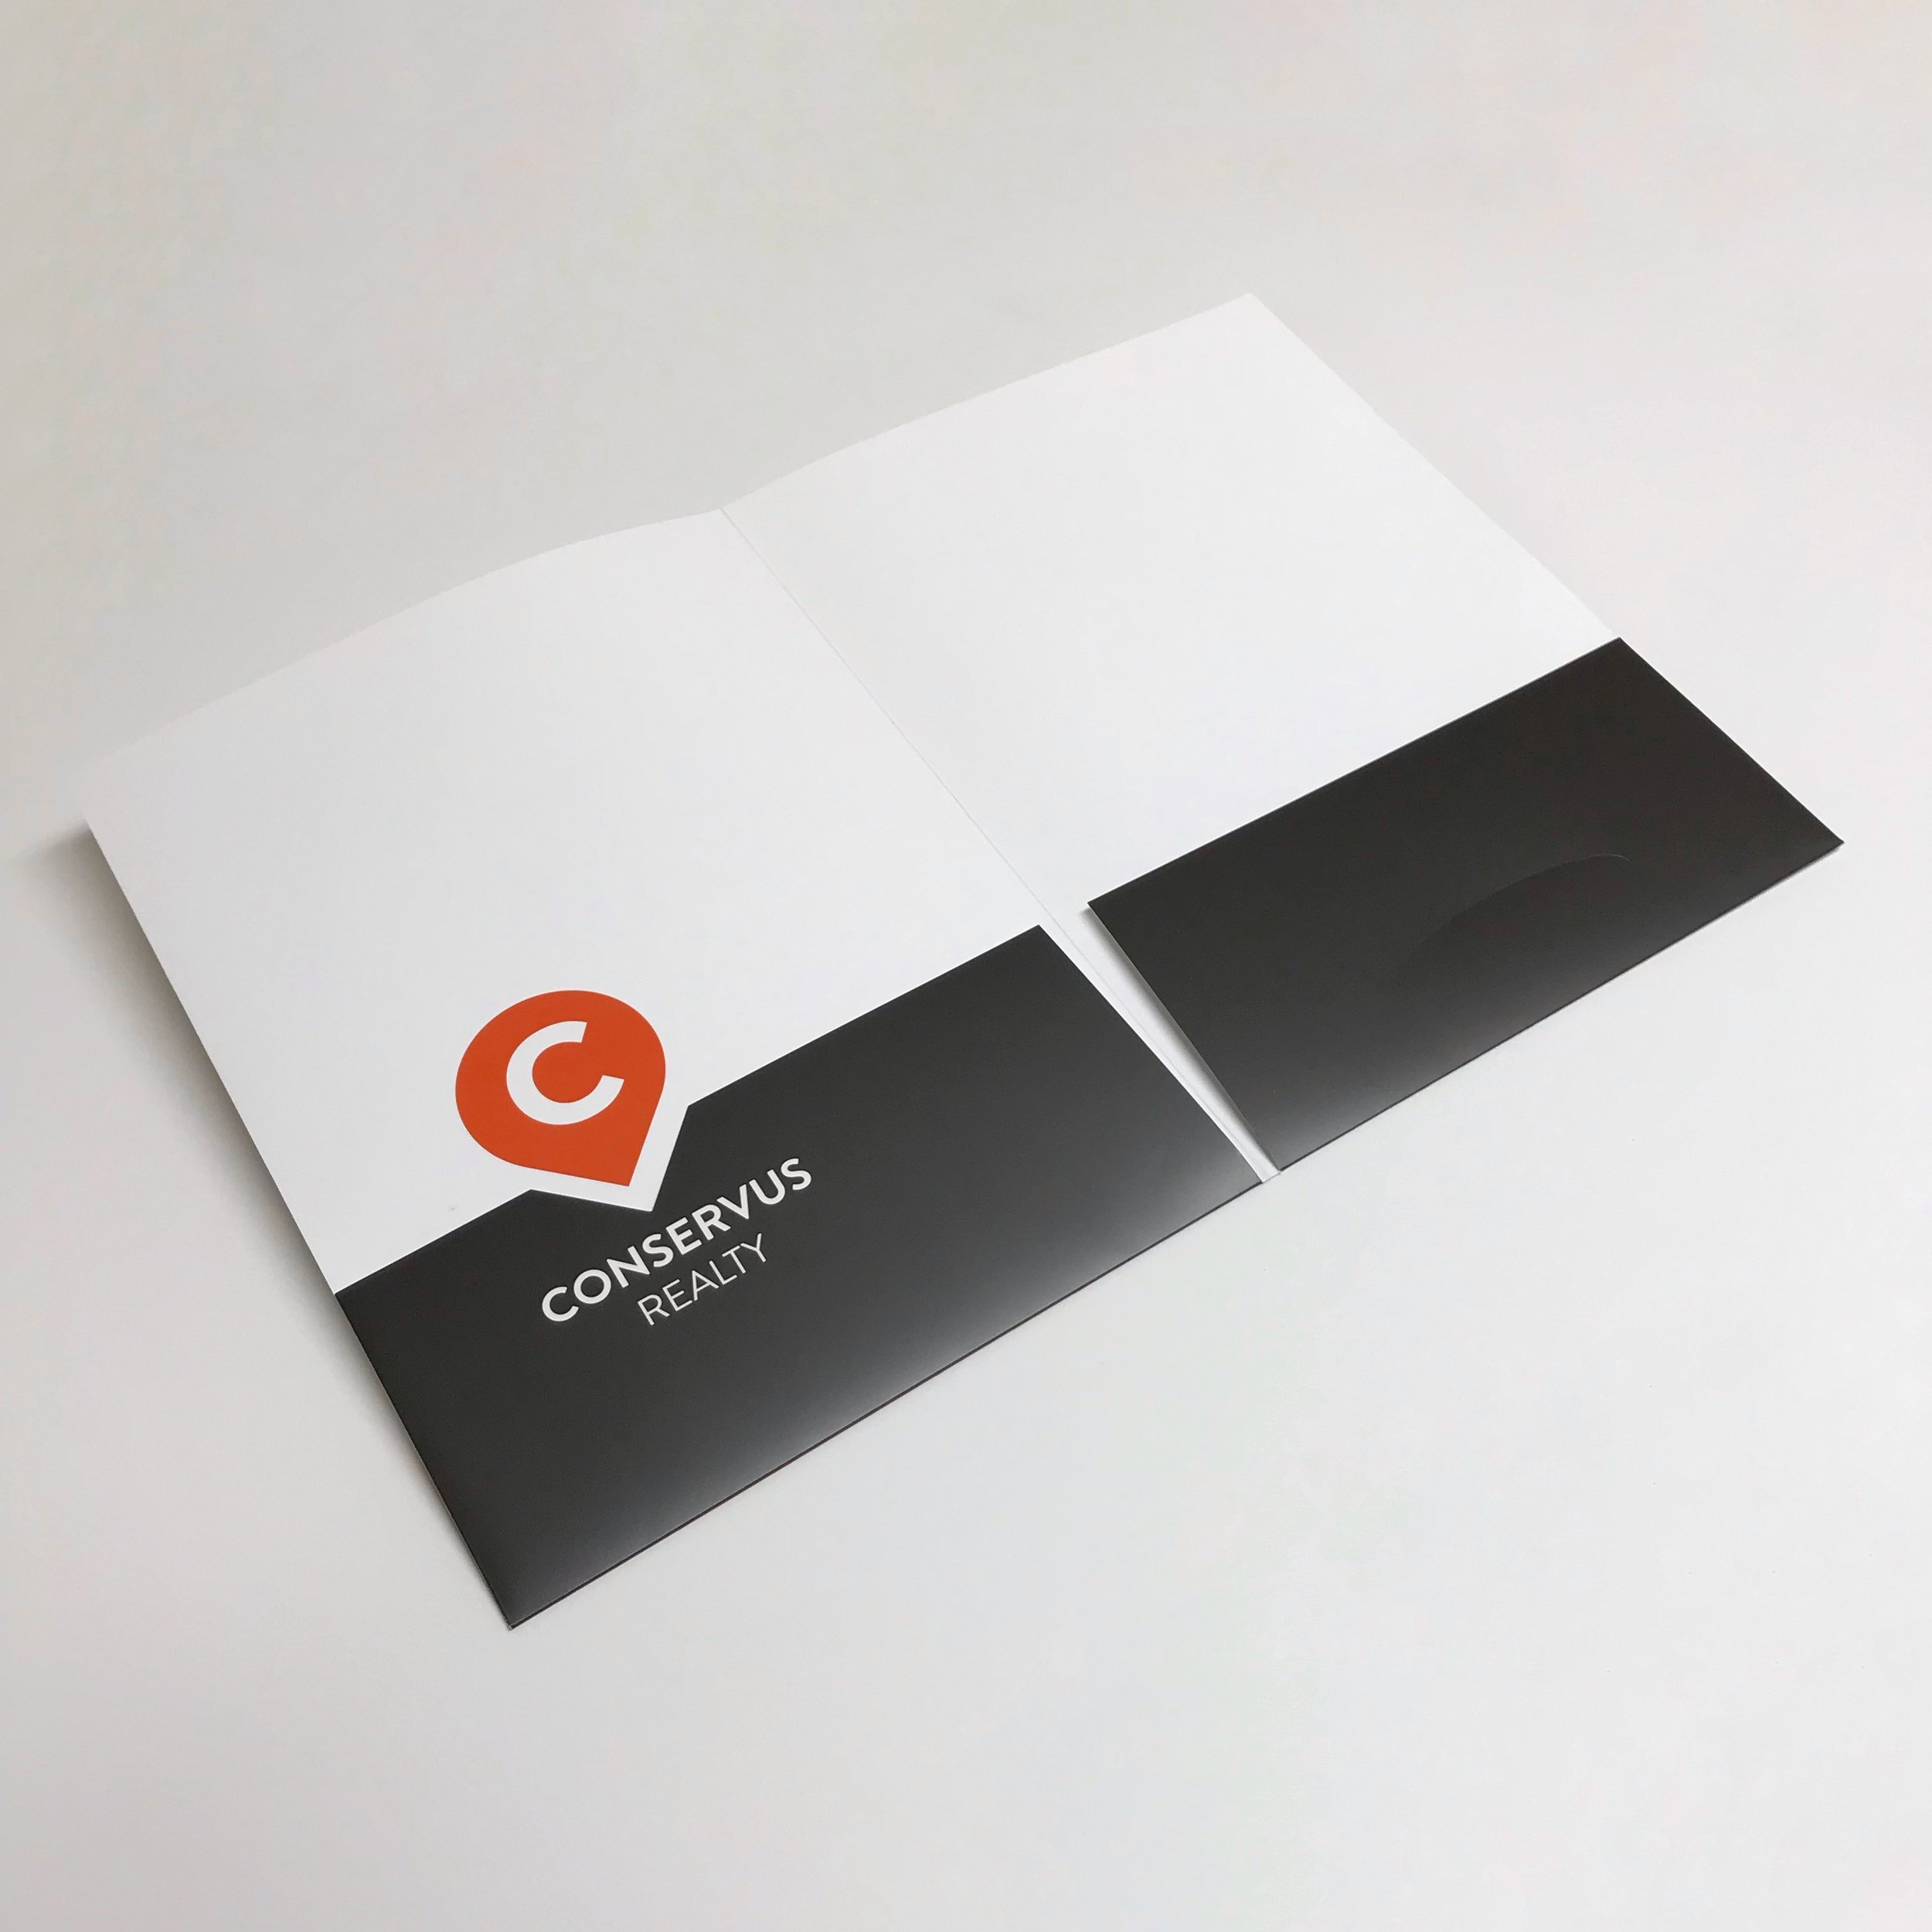 Unique die cut pocket folder for corporate use printed in Minnesota